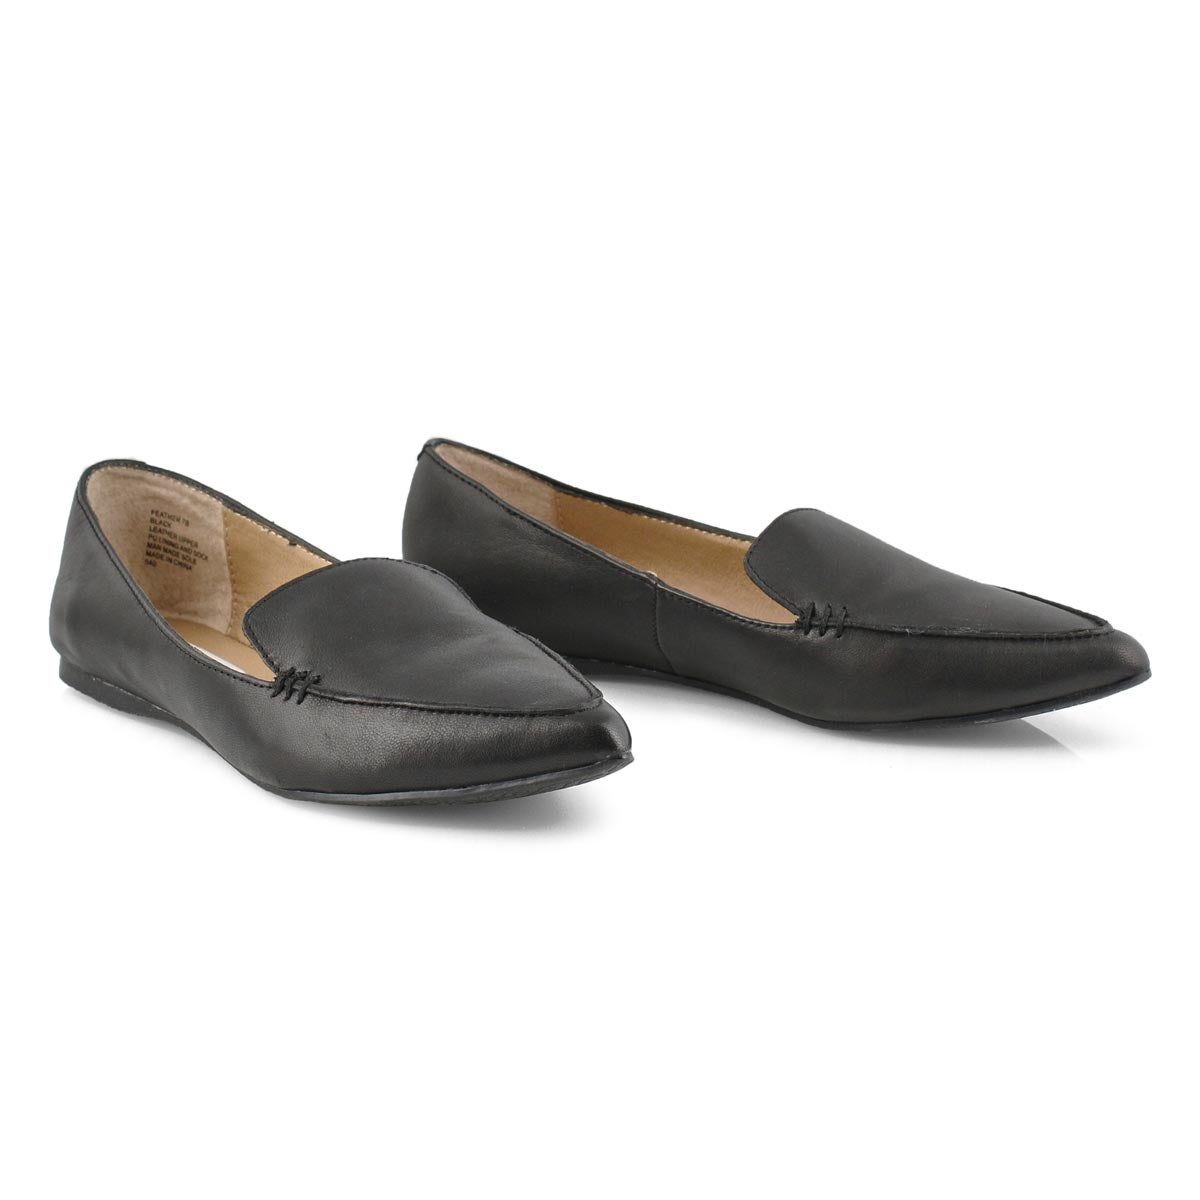 Lds Feather black leather casual flat